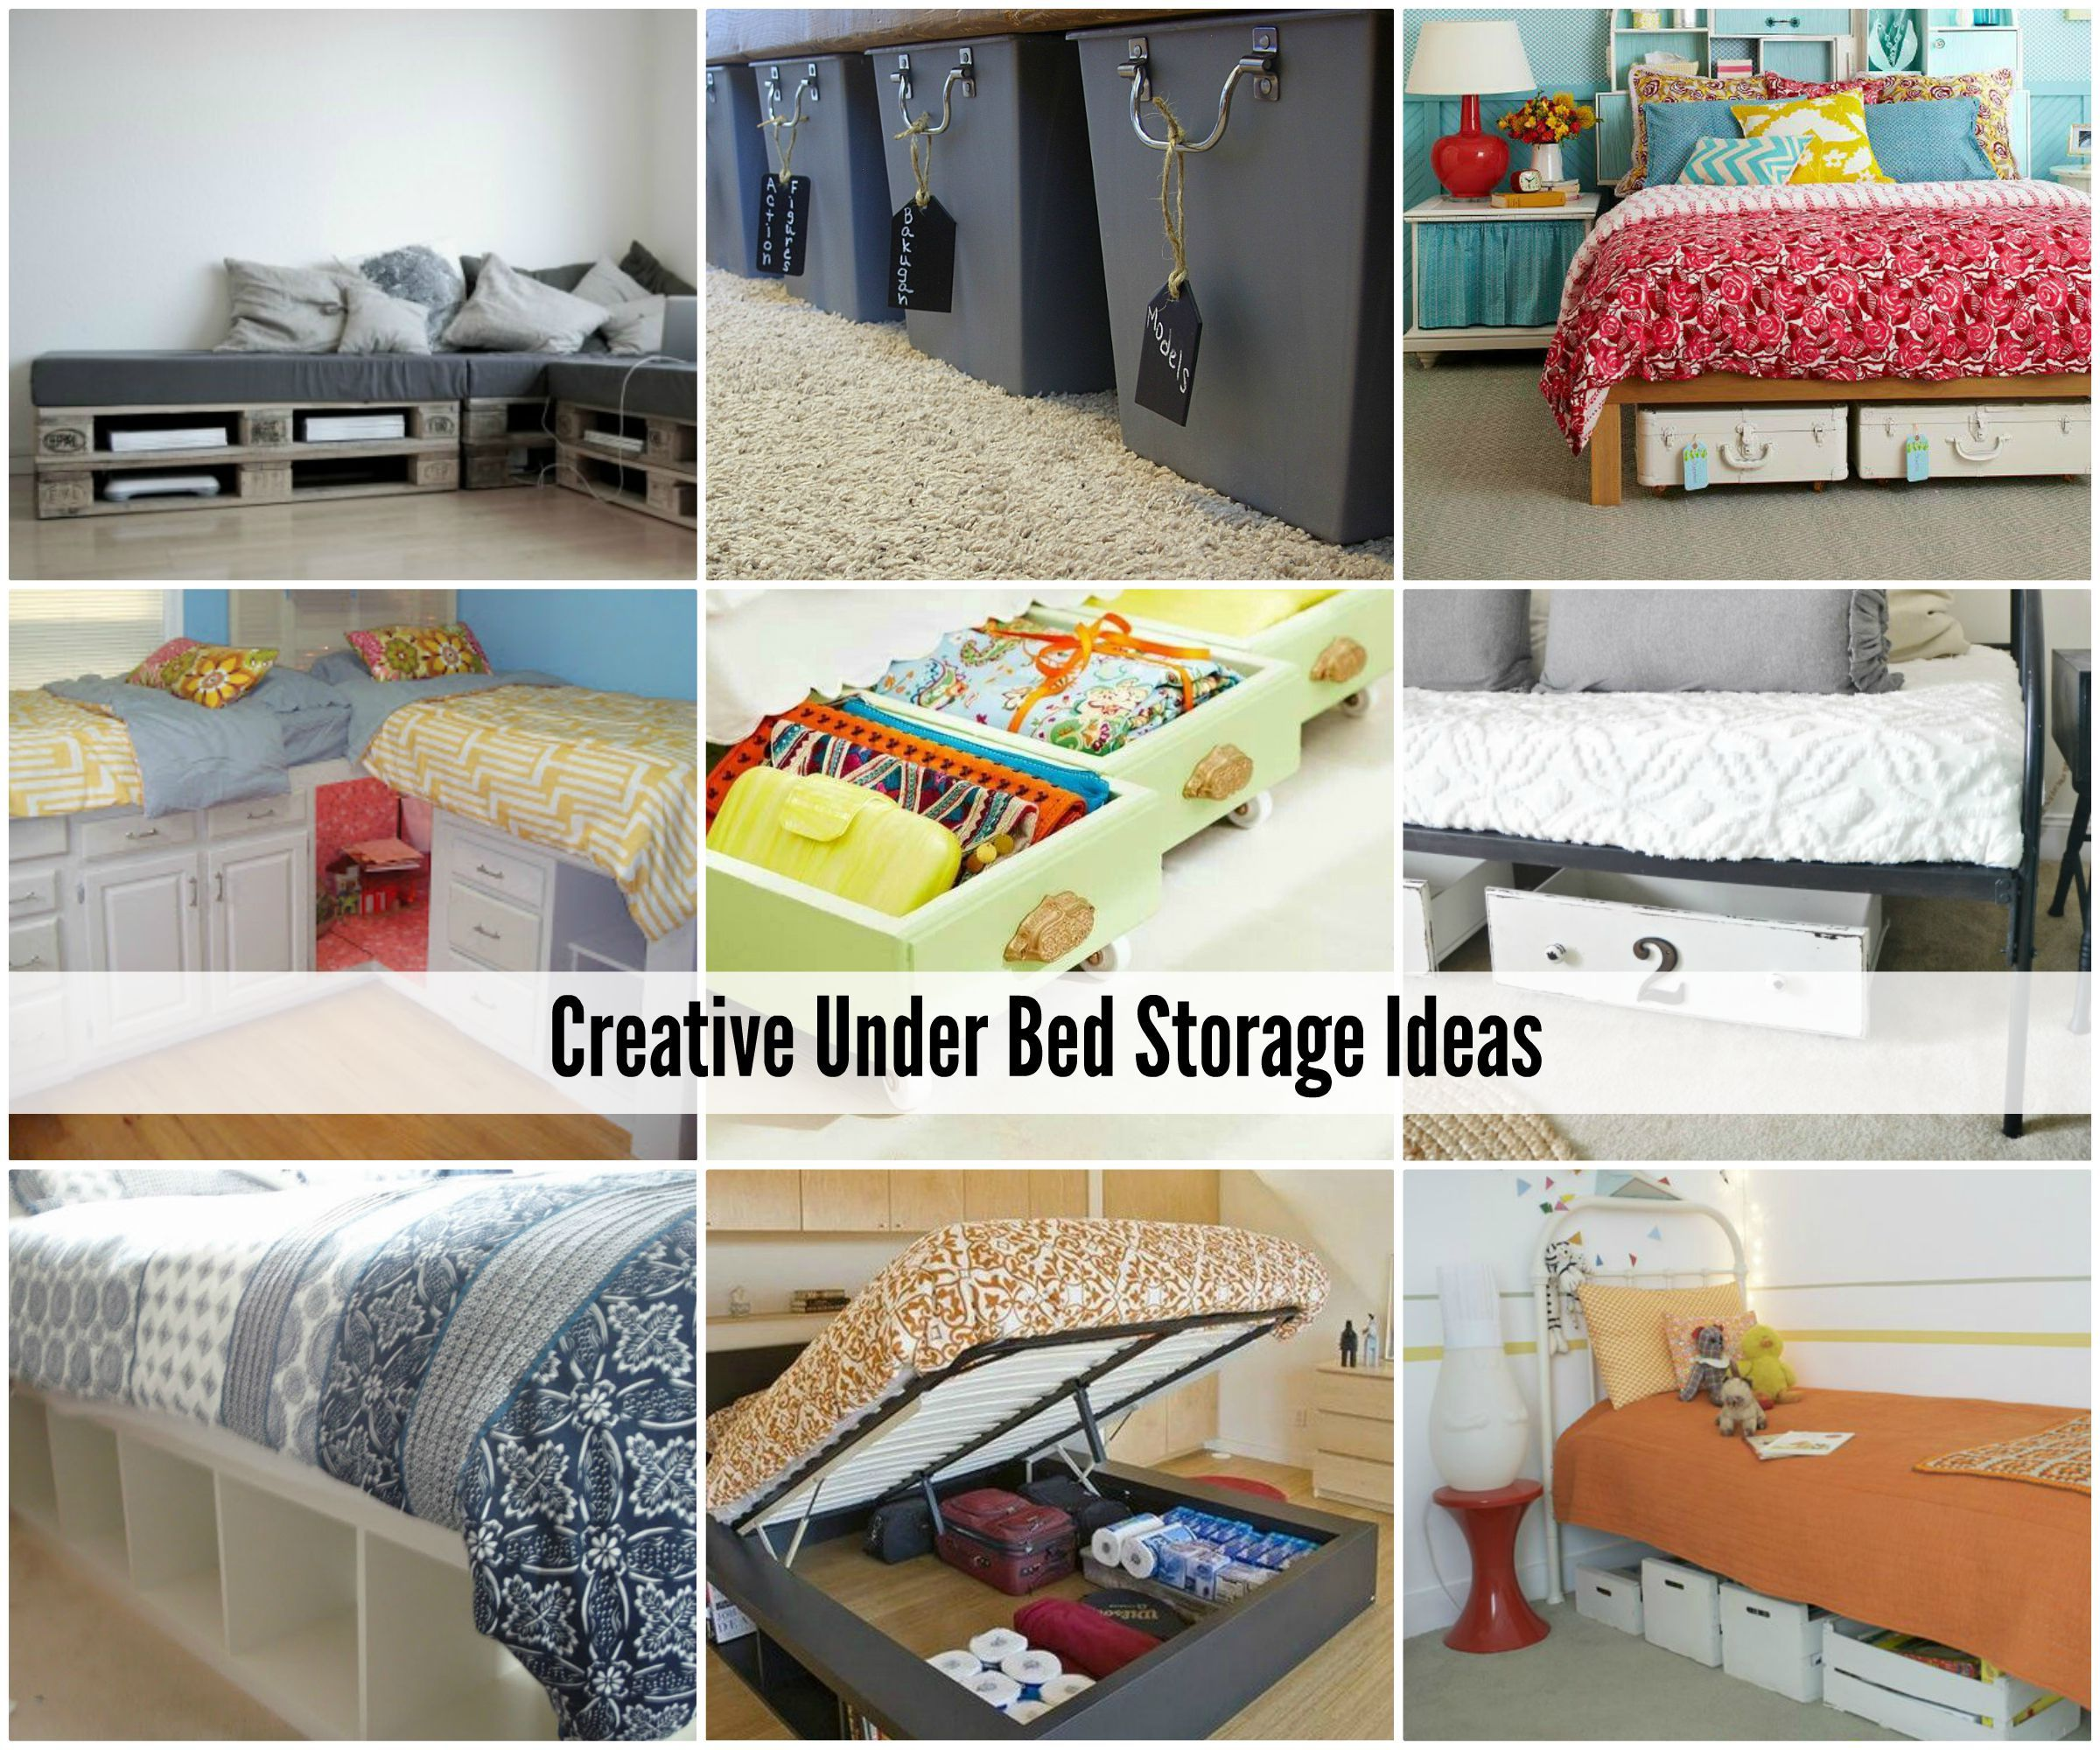 Check Out These Creative Under Bed Storage Ideas To Help Inspire You Get Organized And With All Of Your Small E Needs